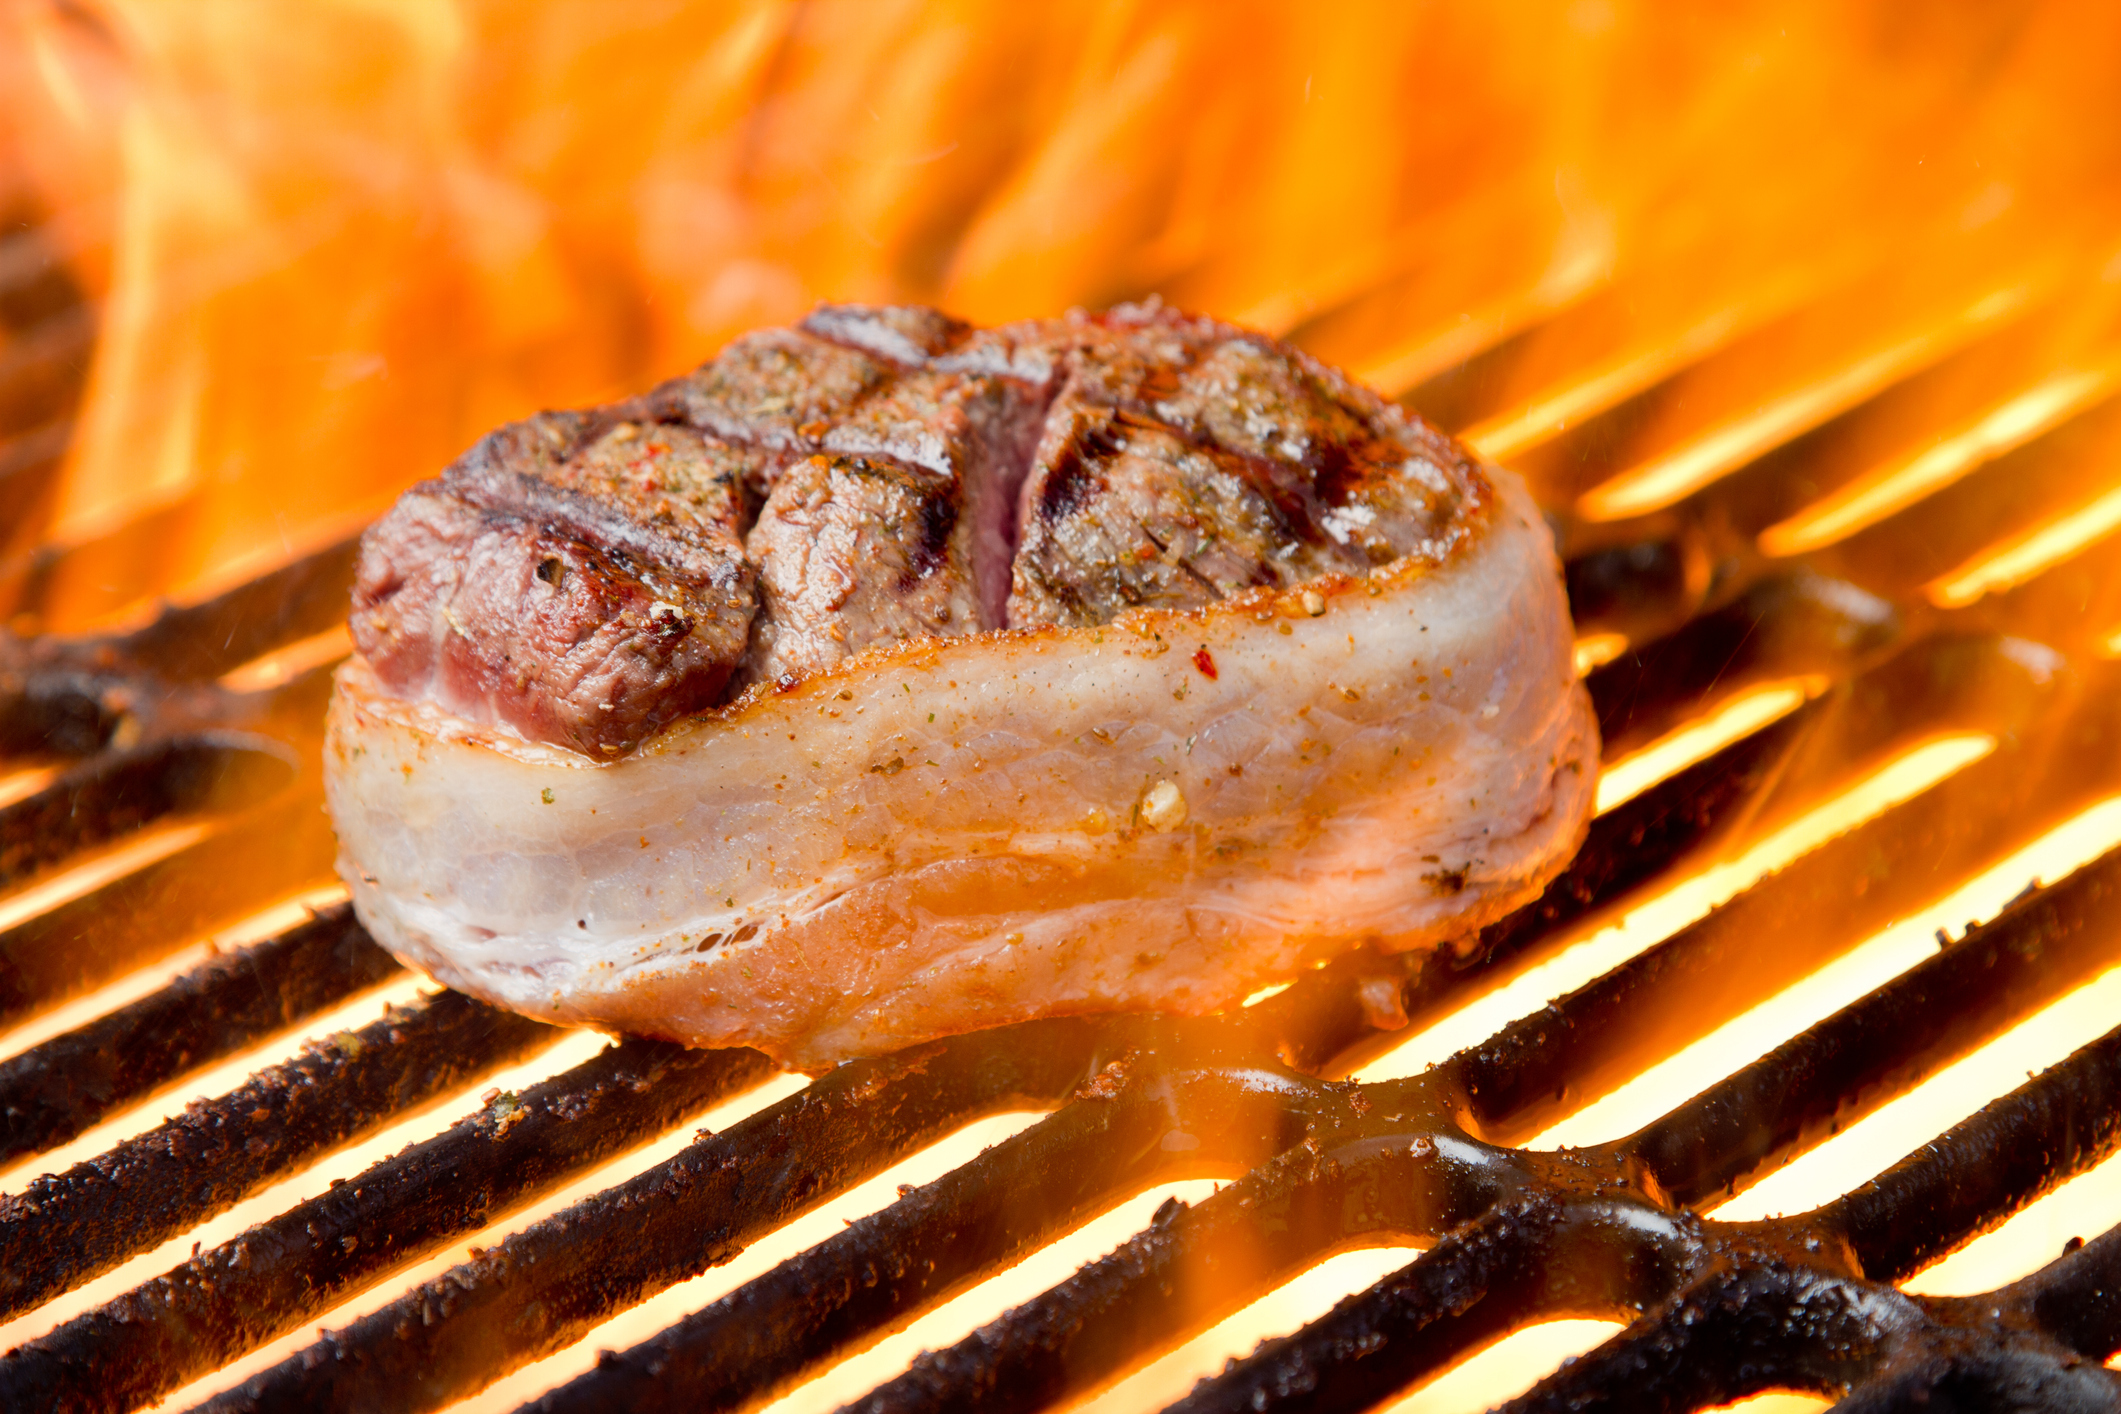 Juicy filet mignon steak on the grill kissed by fire